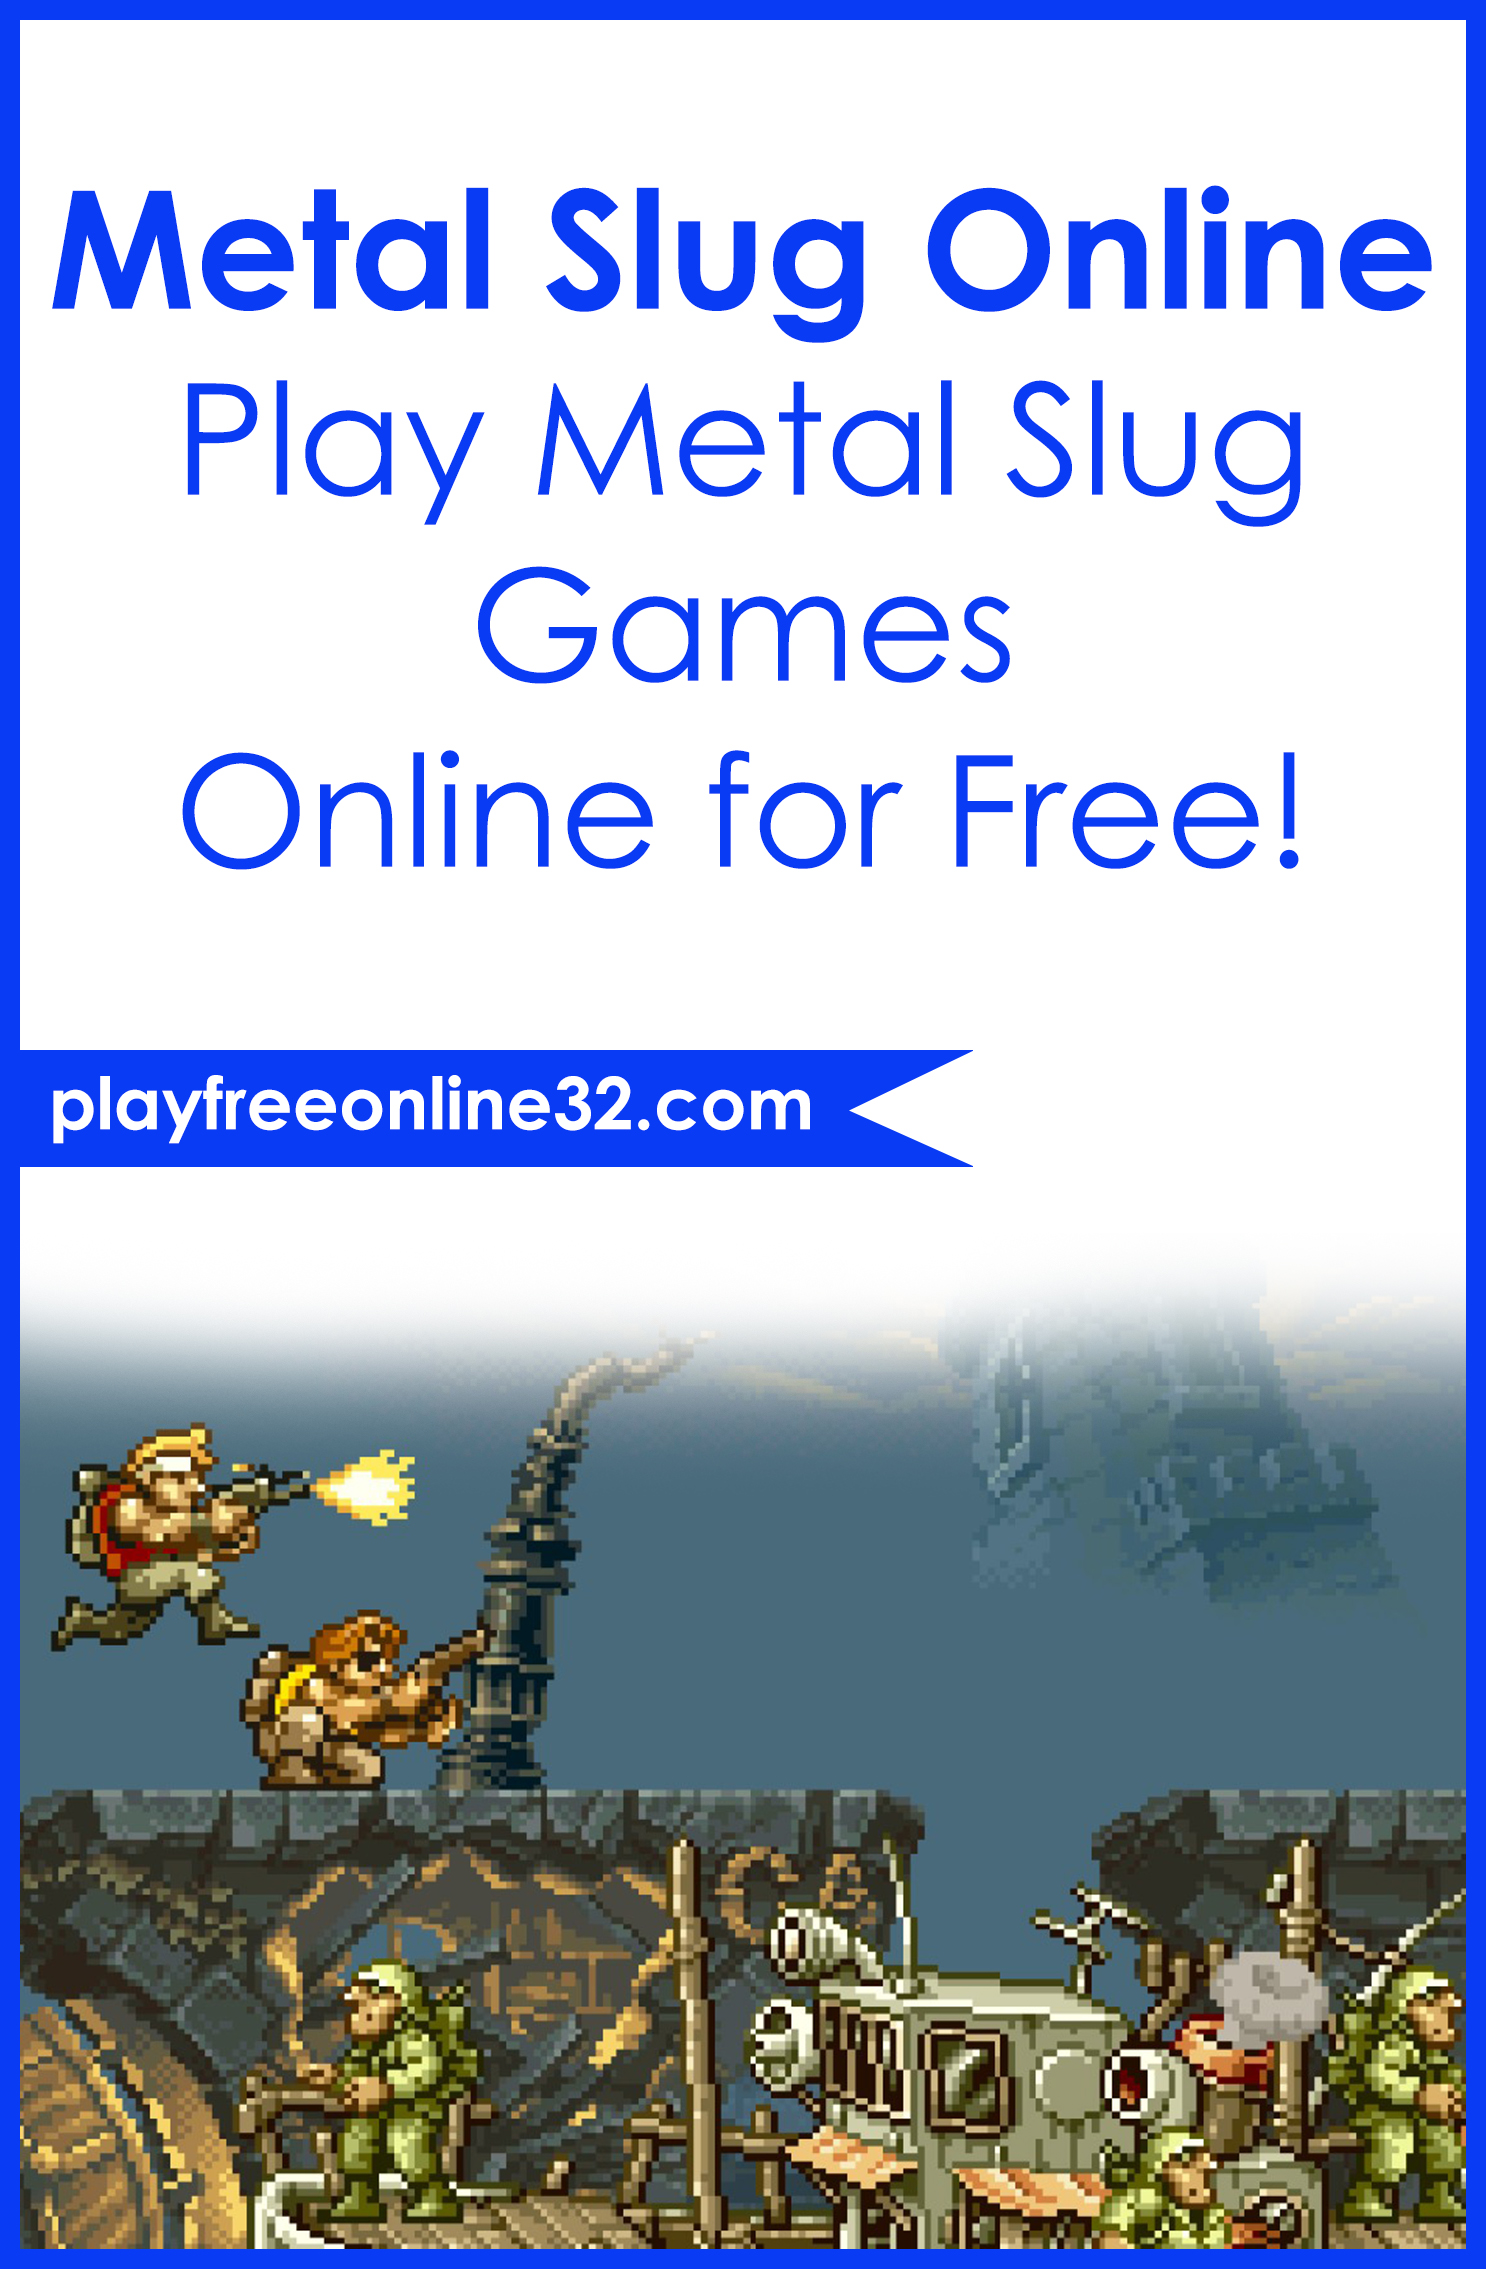 Metal Slug Online • Play Metal Slug Games Online for Free!